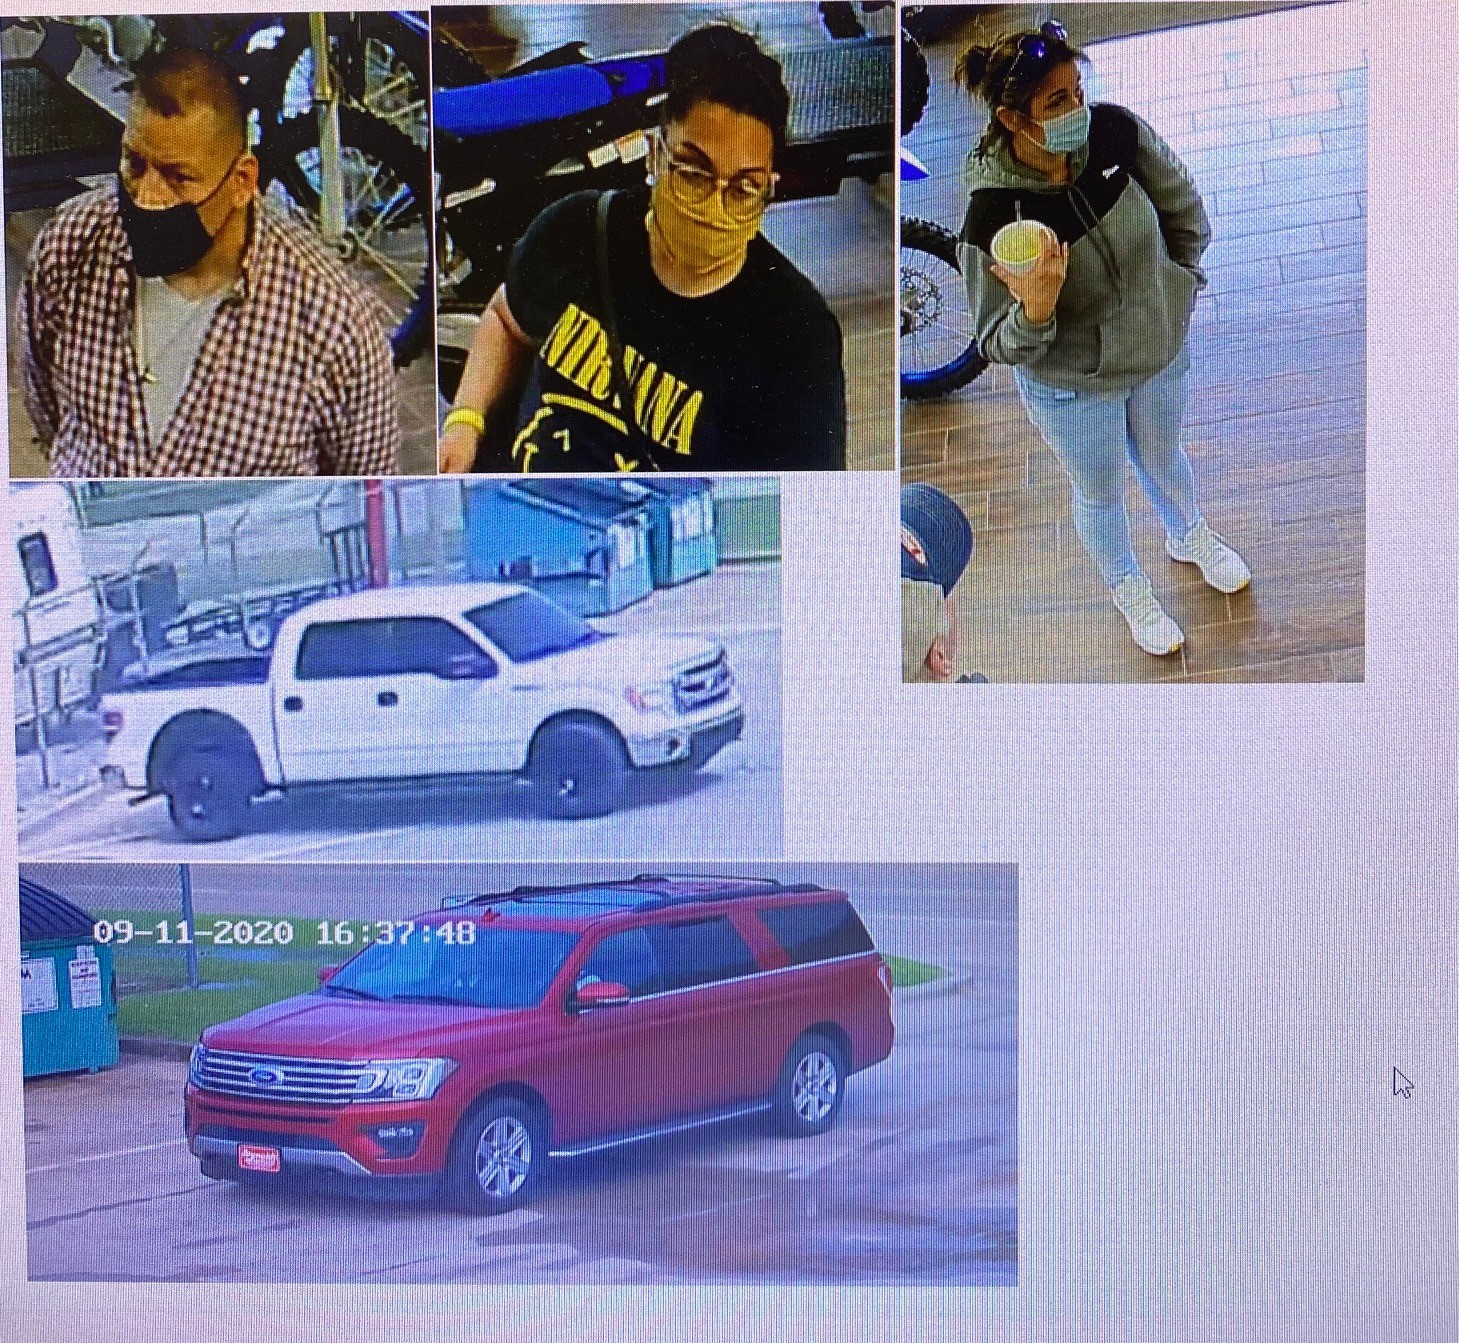 PLEASE HELP IDENTIFY THESE SUSPECTS!!!